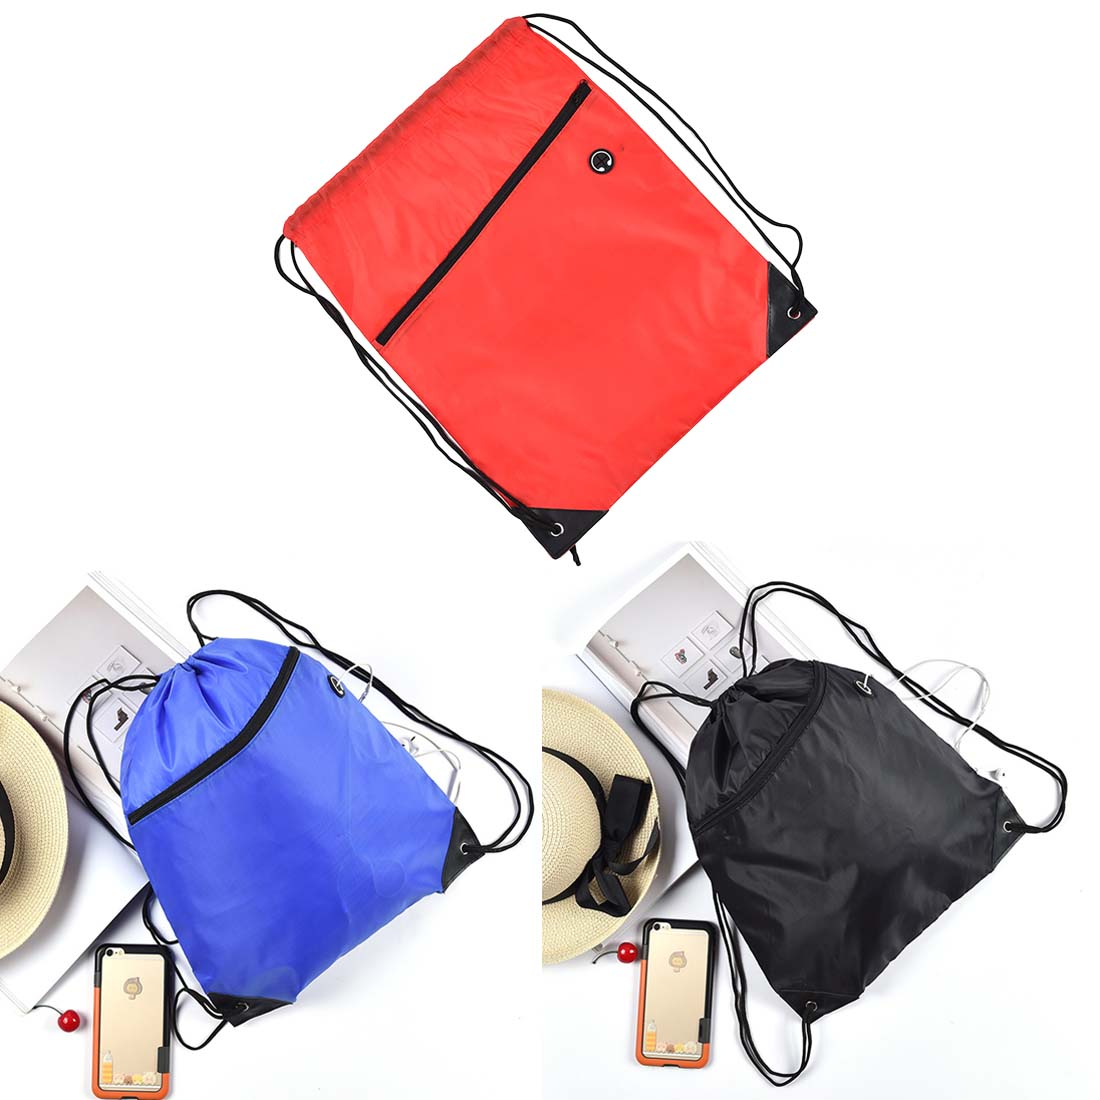 Storage Baskets Gym Storage Bag Nylon Sports Drawstring Riding Backpack Shoes Container Bag Organizer Storage Basket Waterproof Color Random